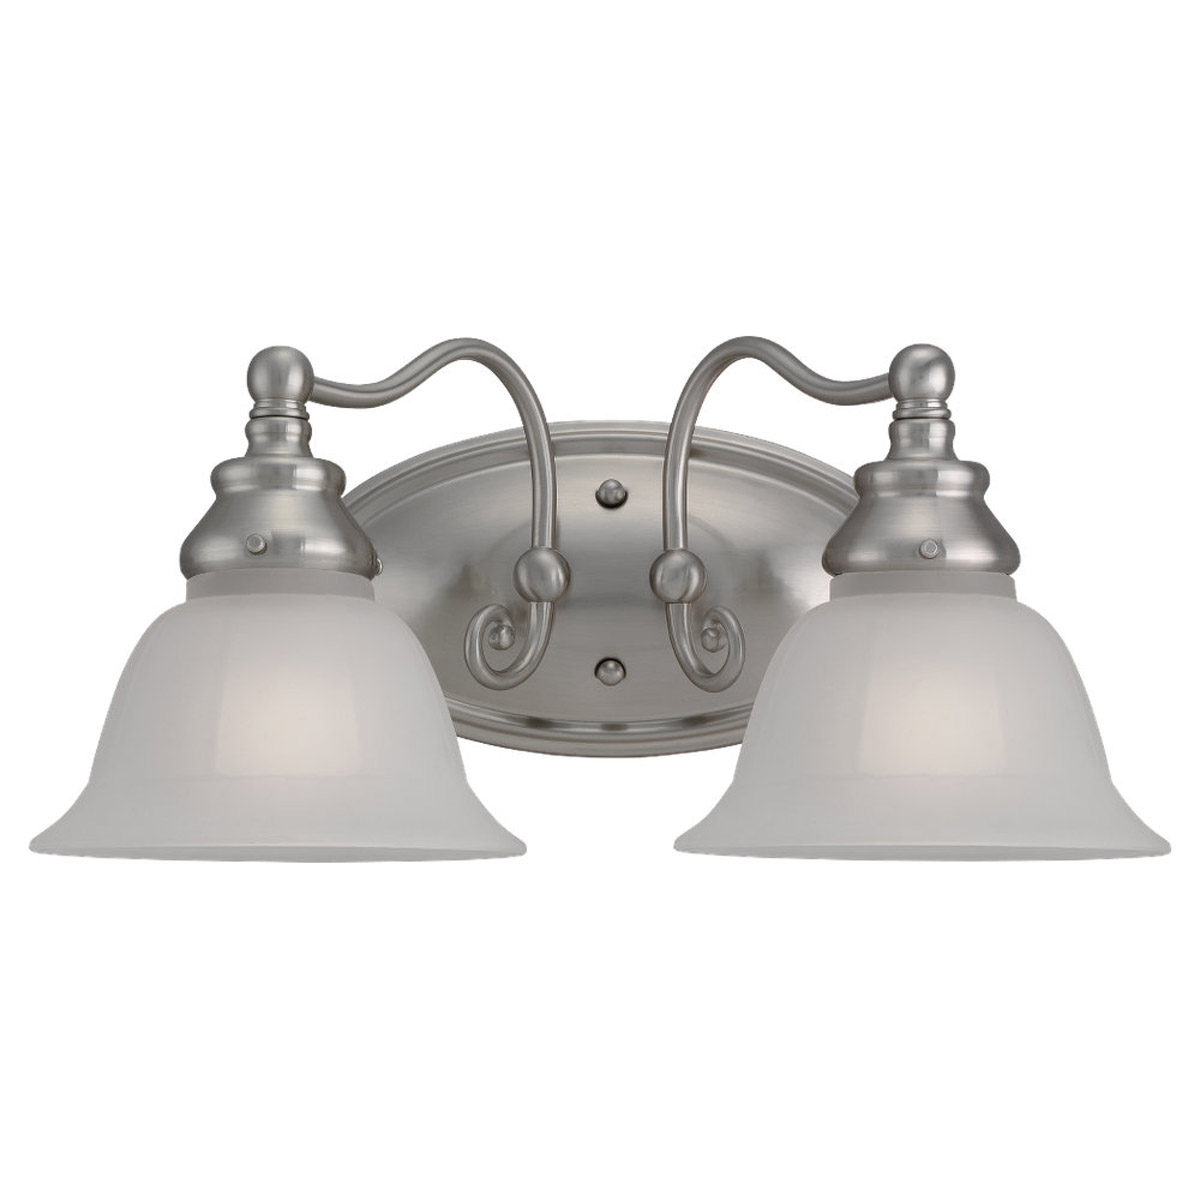 Sea Gull Lighting Canterbury 2 Light Bath Vanity in Brushed Nickel 44651-962 photo